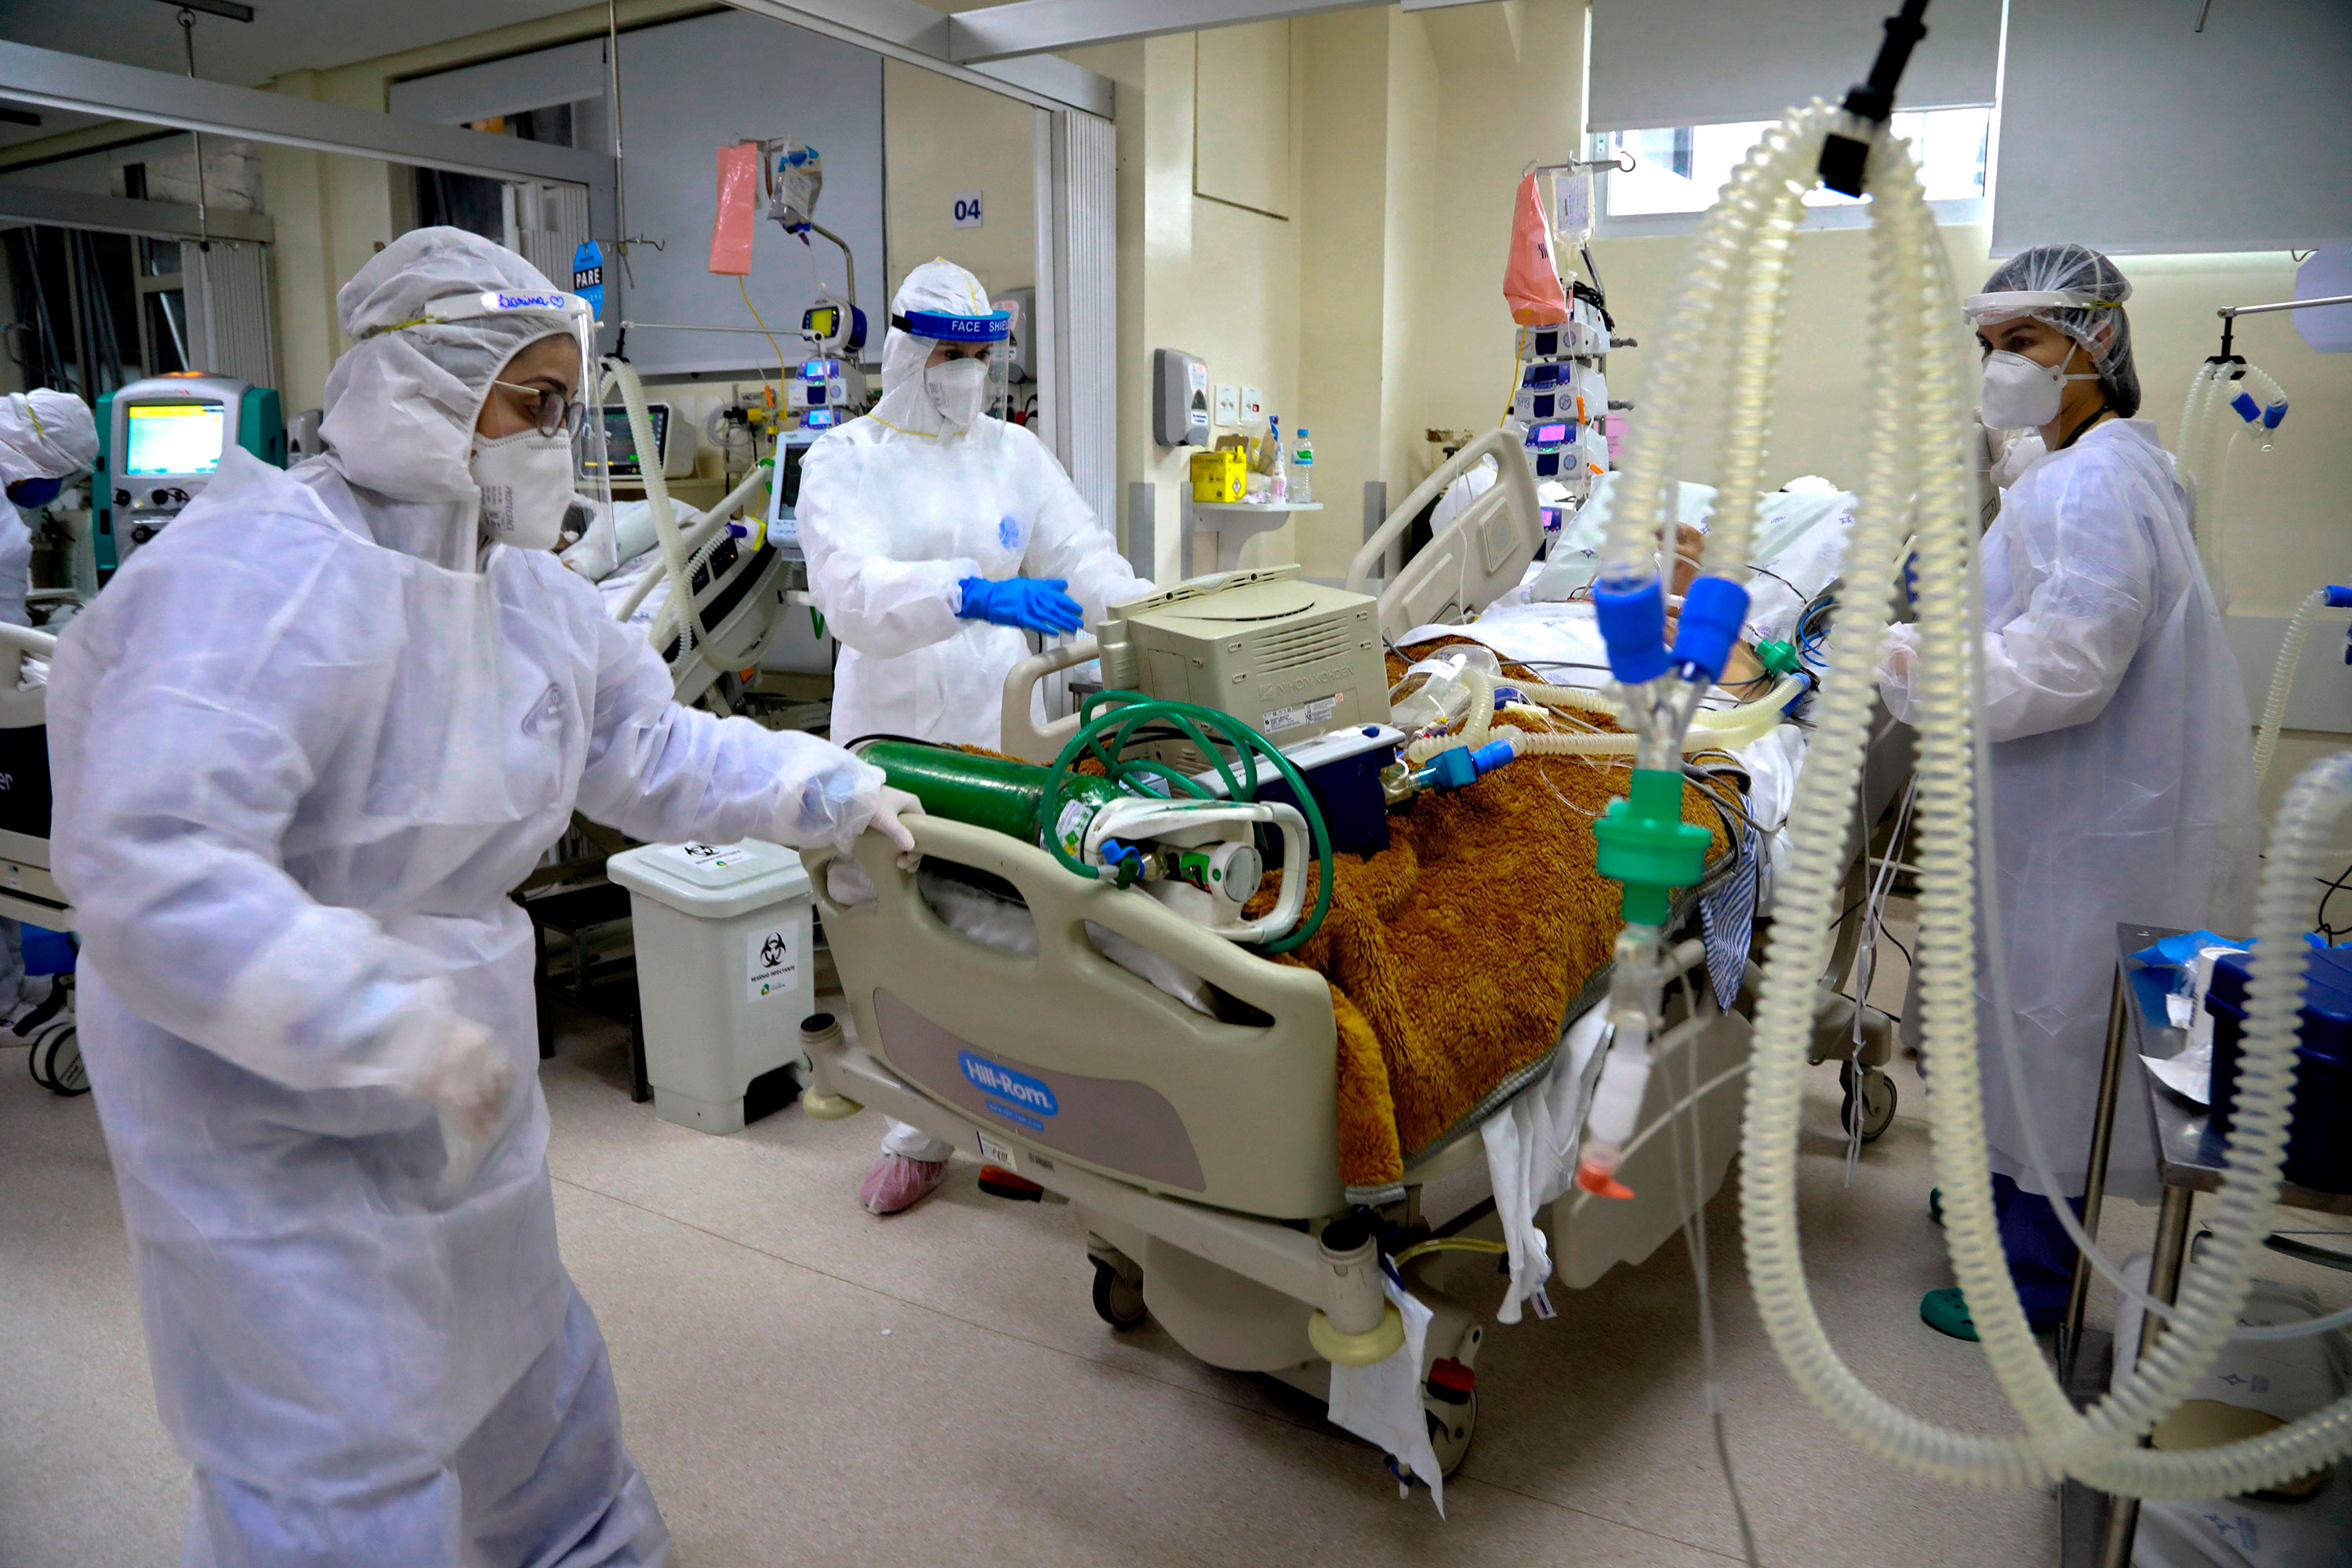 Medical personnel treat a coronavirus patient in the Intensive Care Unit of the Santa Casa de Misericordia Hospital on August 13 in Porto Alegre, Brazil.